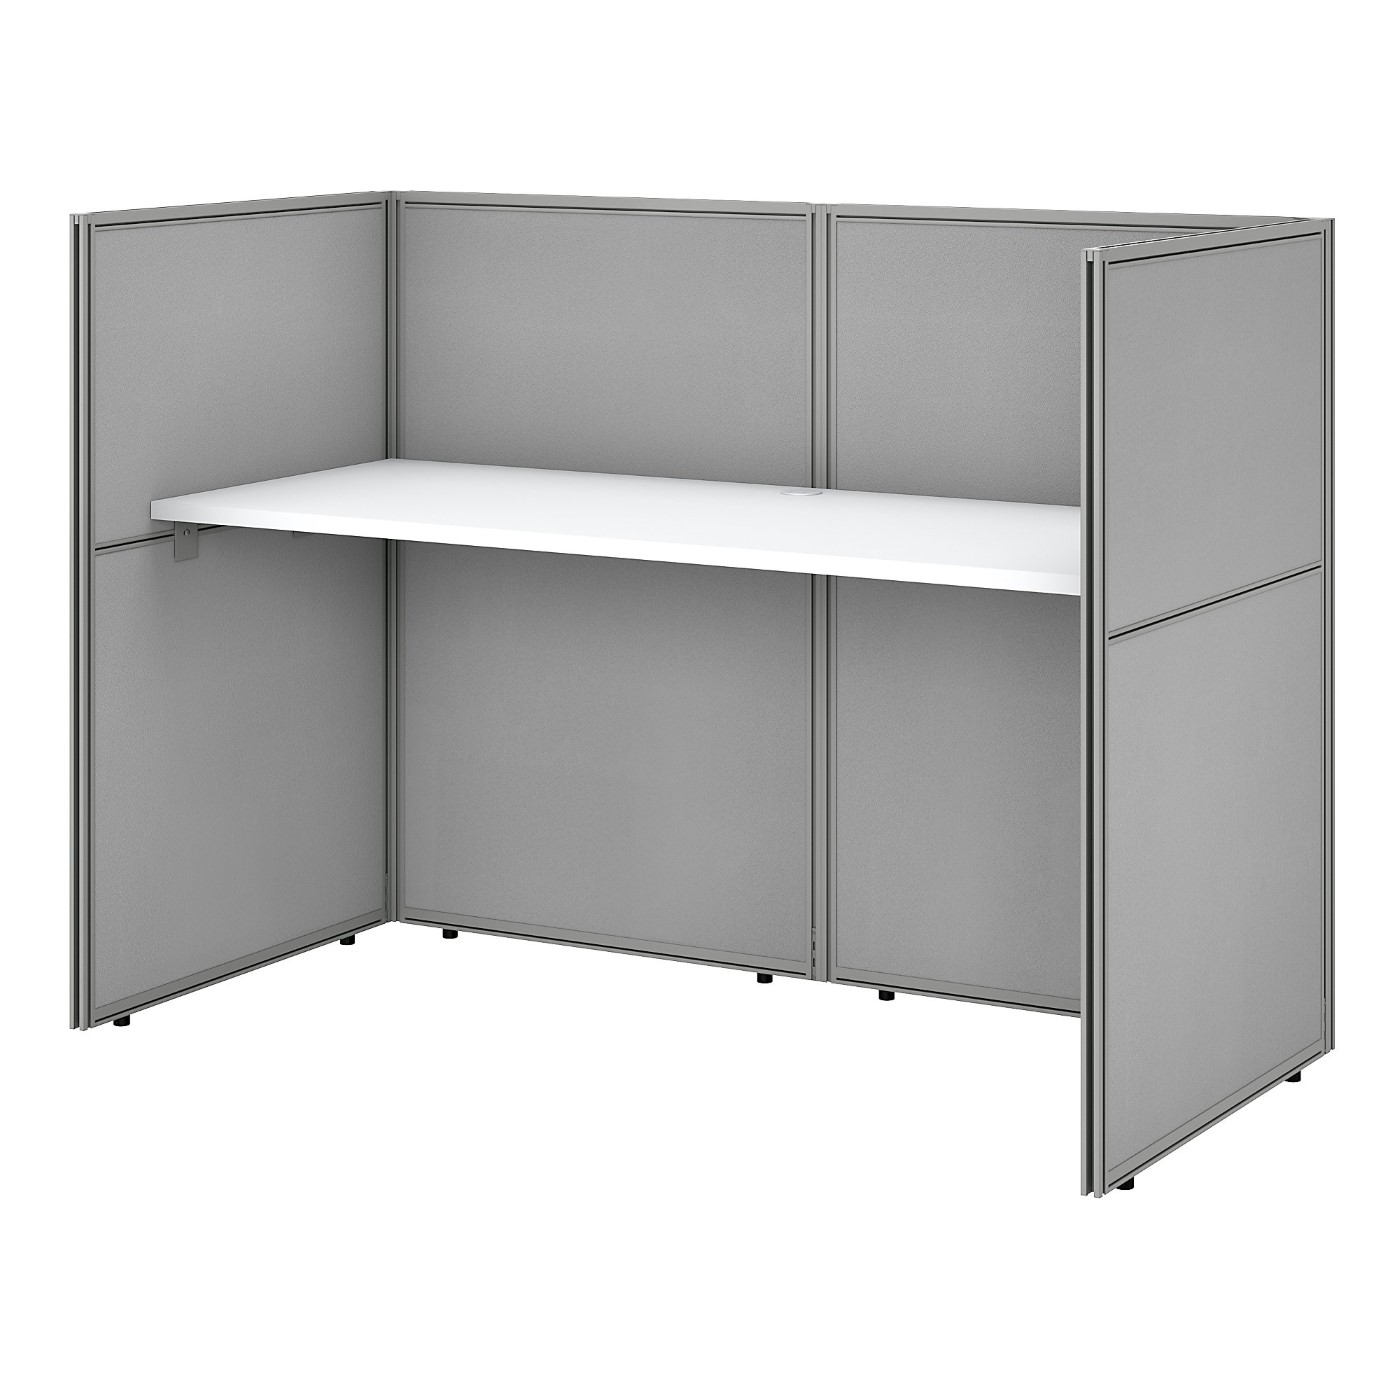 BUSH BUSINESS FURNITURE EASY OFFICE 60W CUBICLE DESK WORKSTATION WITH 45H CLOSED PANELS. FREE SHIPPING SALE DEDUCT 10% MORE ENTER '10percent' IN COUPON CODE BOX WHILE CHECKING OUT. ENDS 5-31-20.